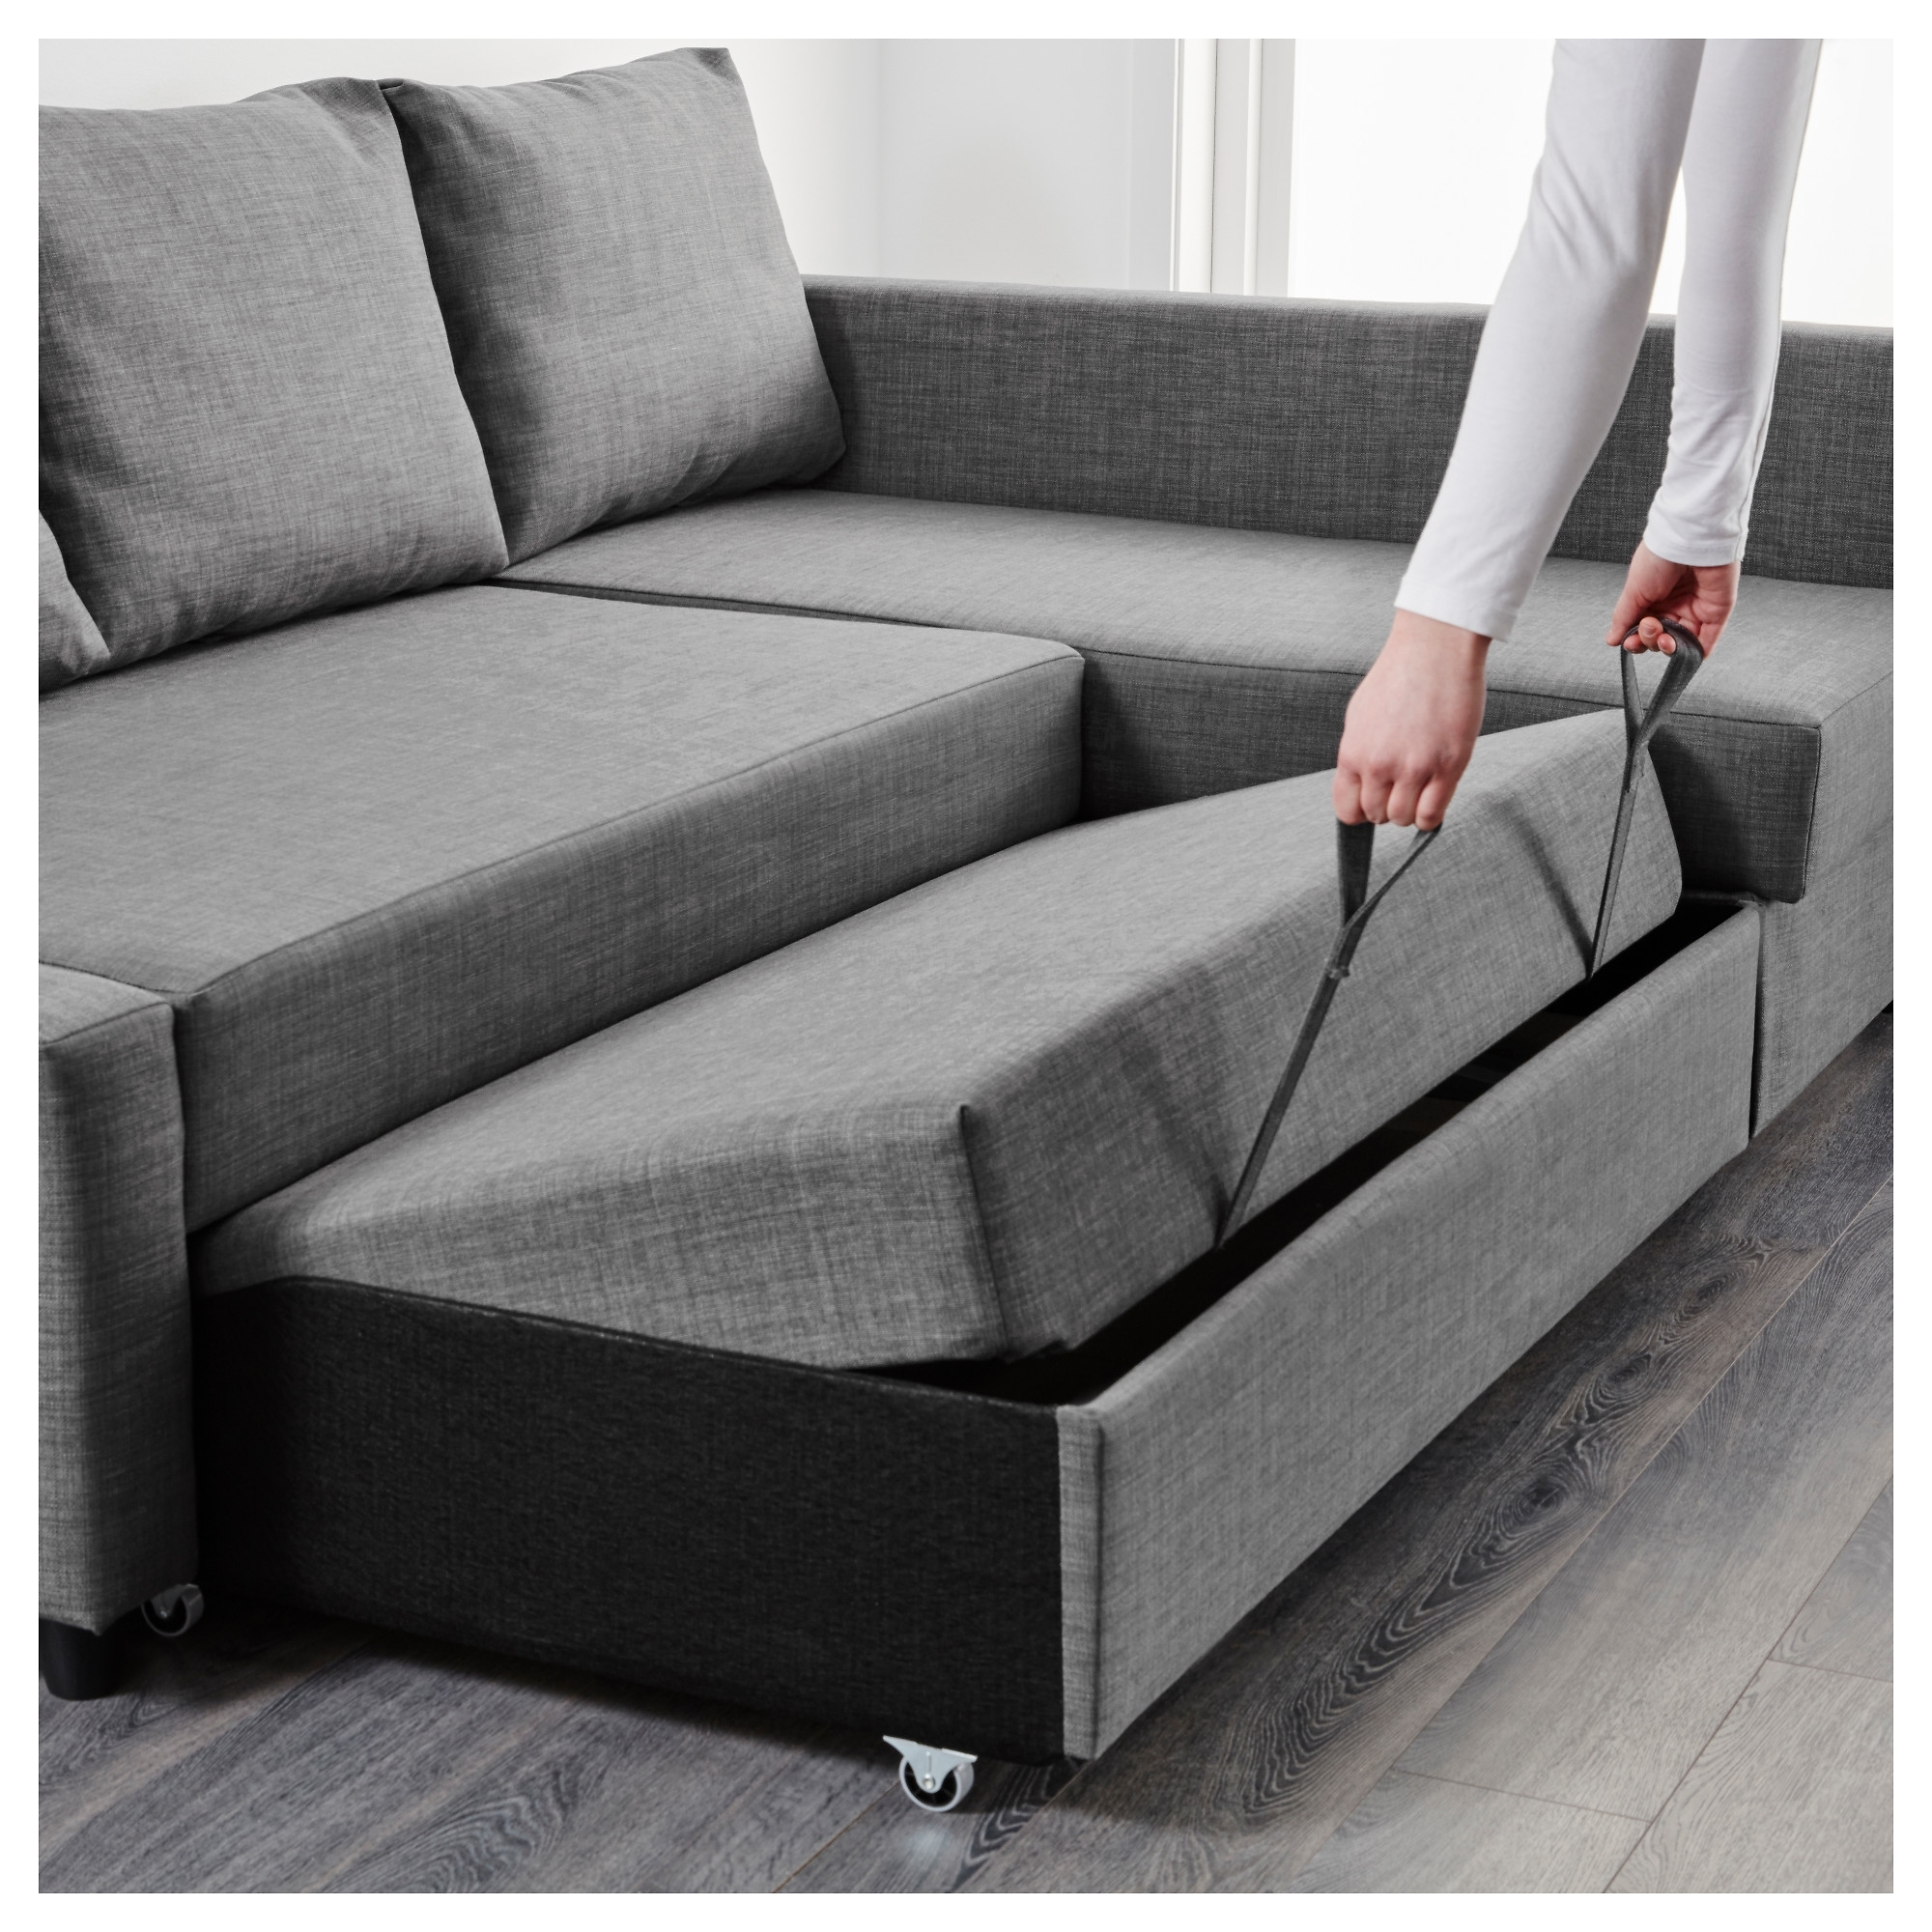 Ikea Corner Sofa Bed 15 Best Collection Of Ikea Corner Sofas With Storage